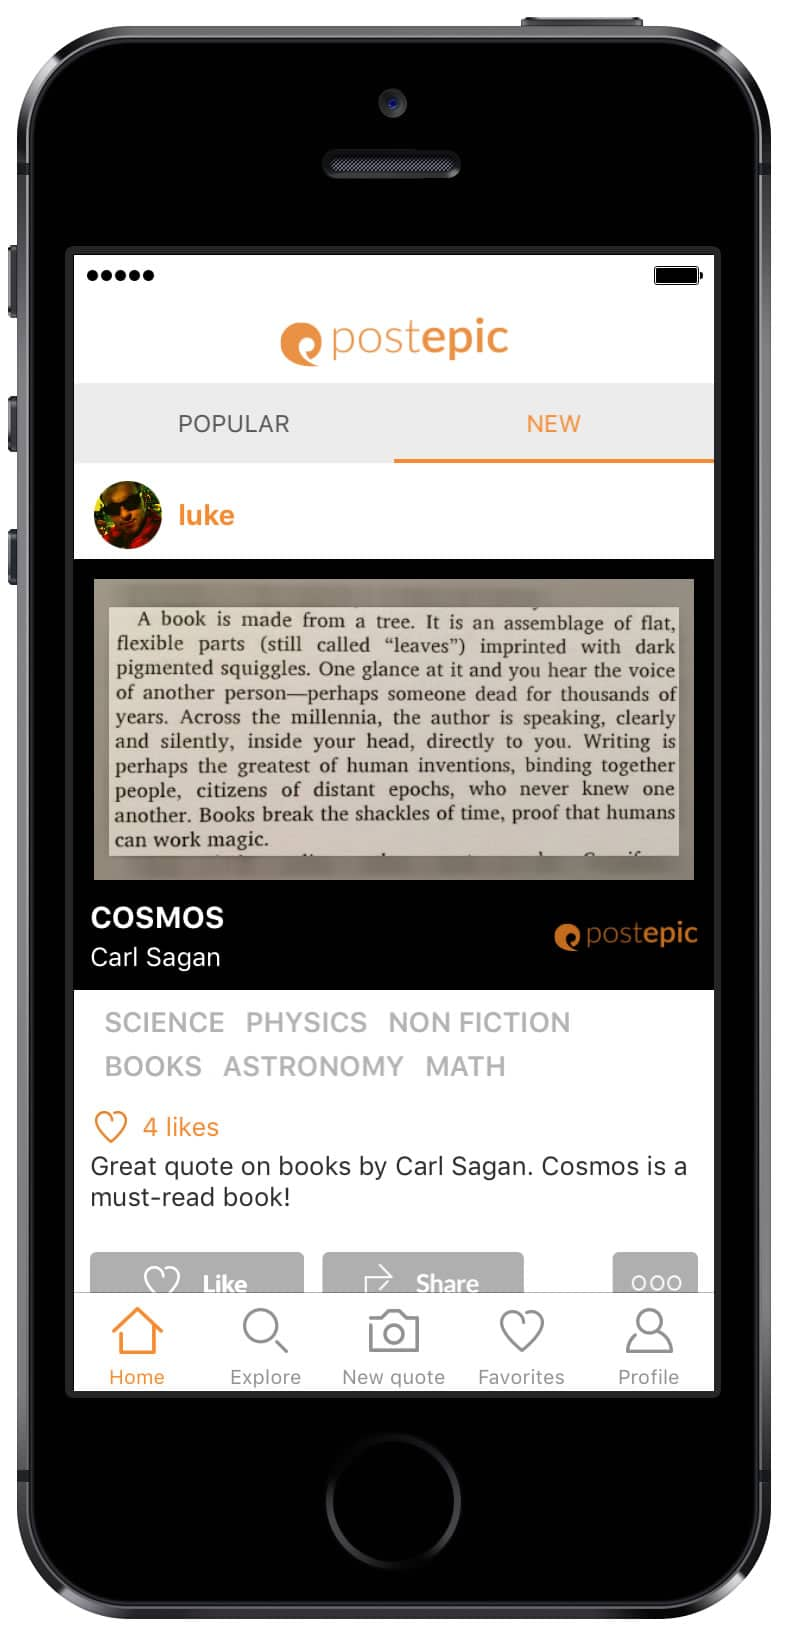 Beautiful mobile app designs by Postepic, an app to capture and store your favorite quotes from books.